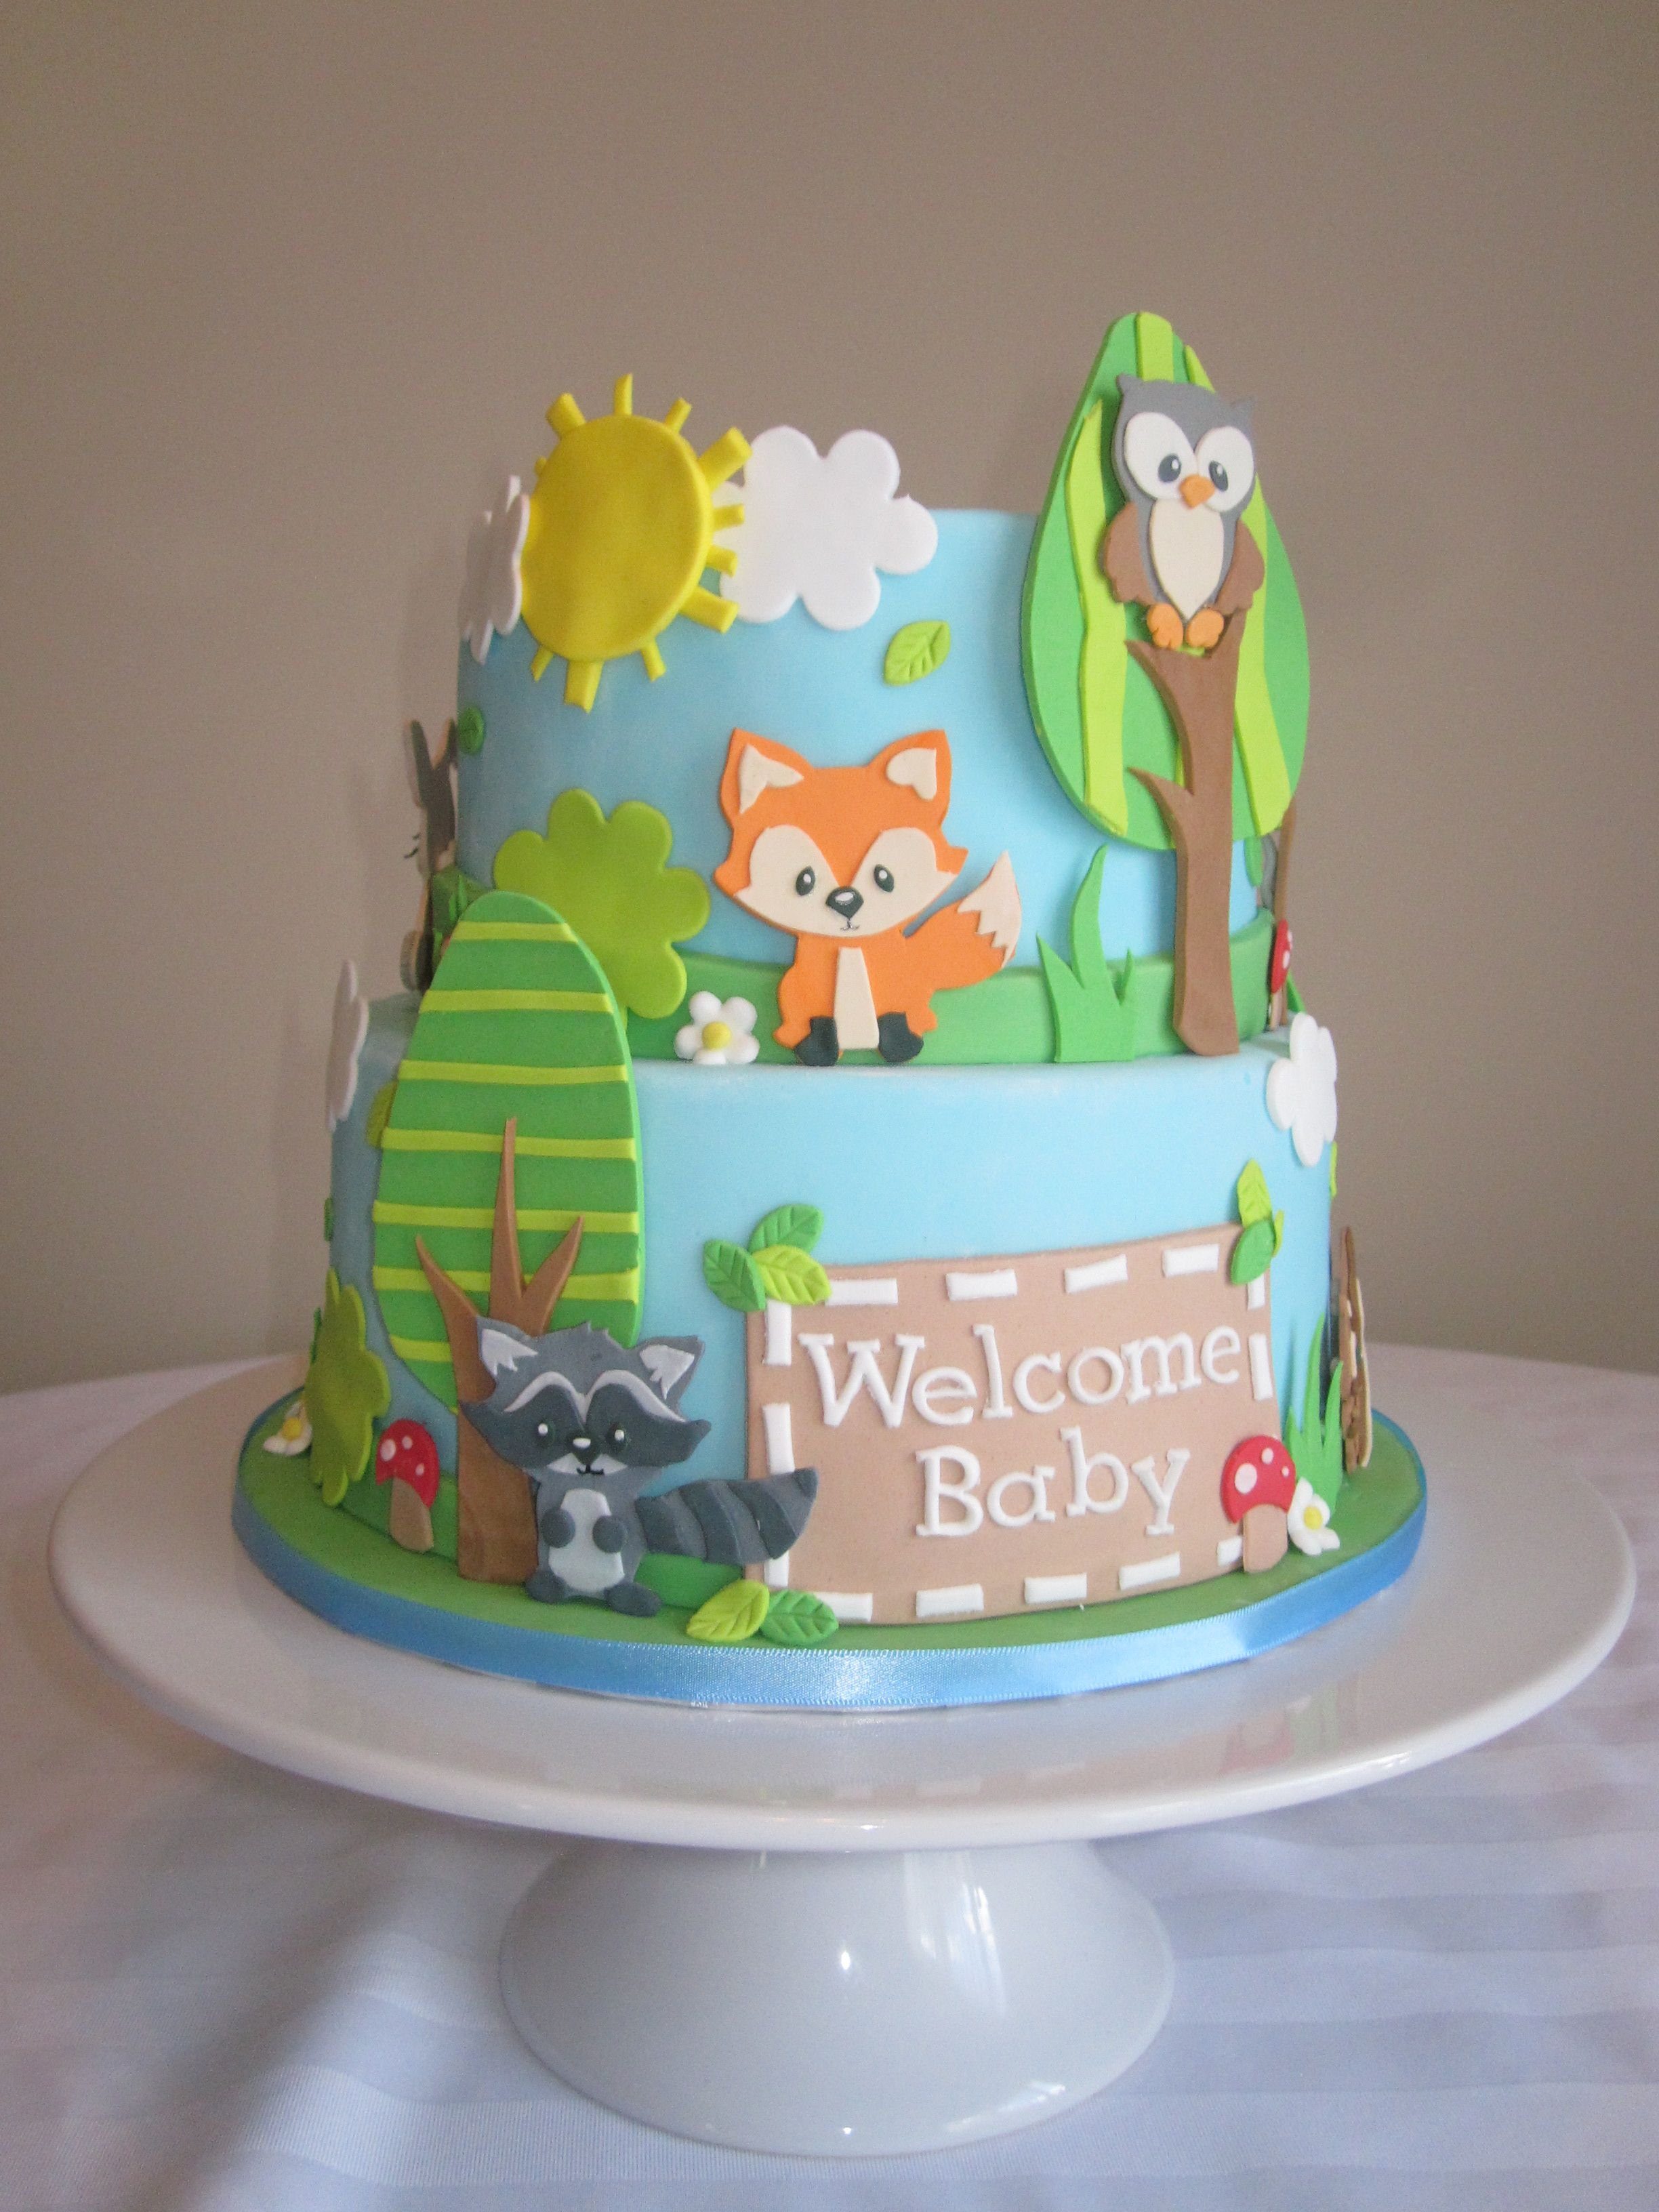 Kuchen Party Forest Animal Cake Cakes For Kids Babyparty Torte